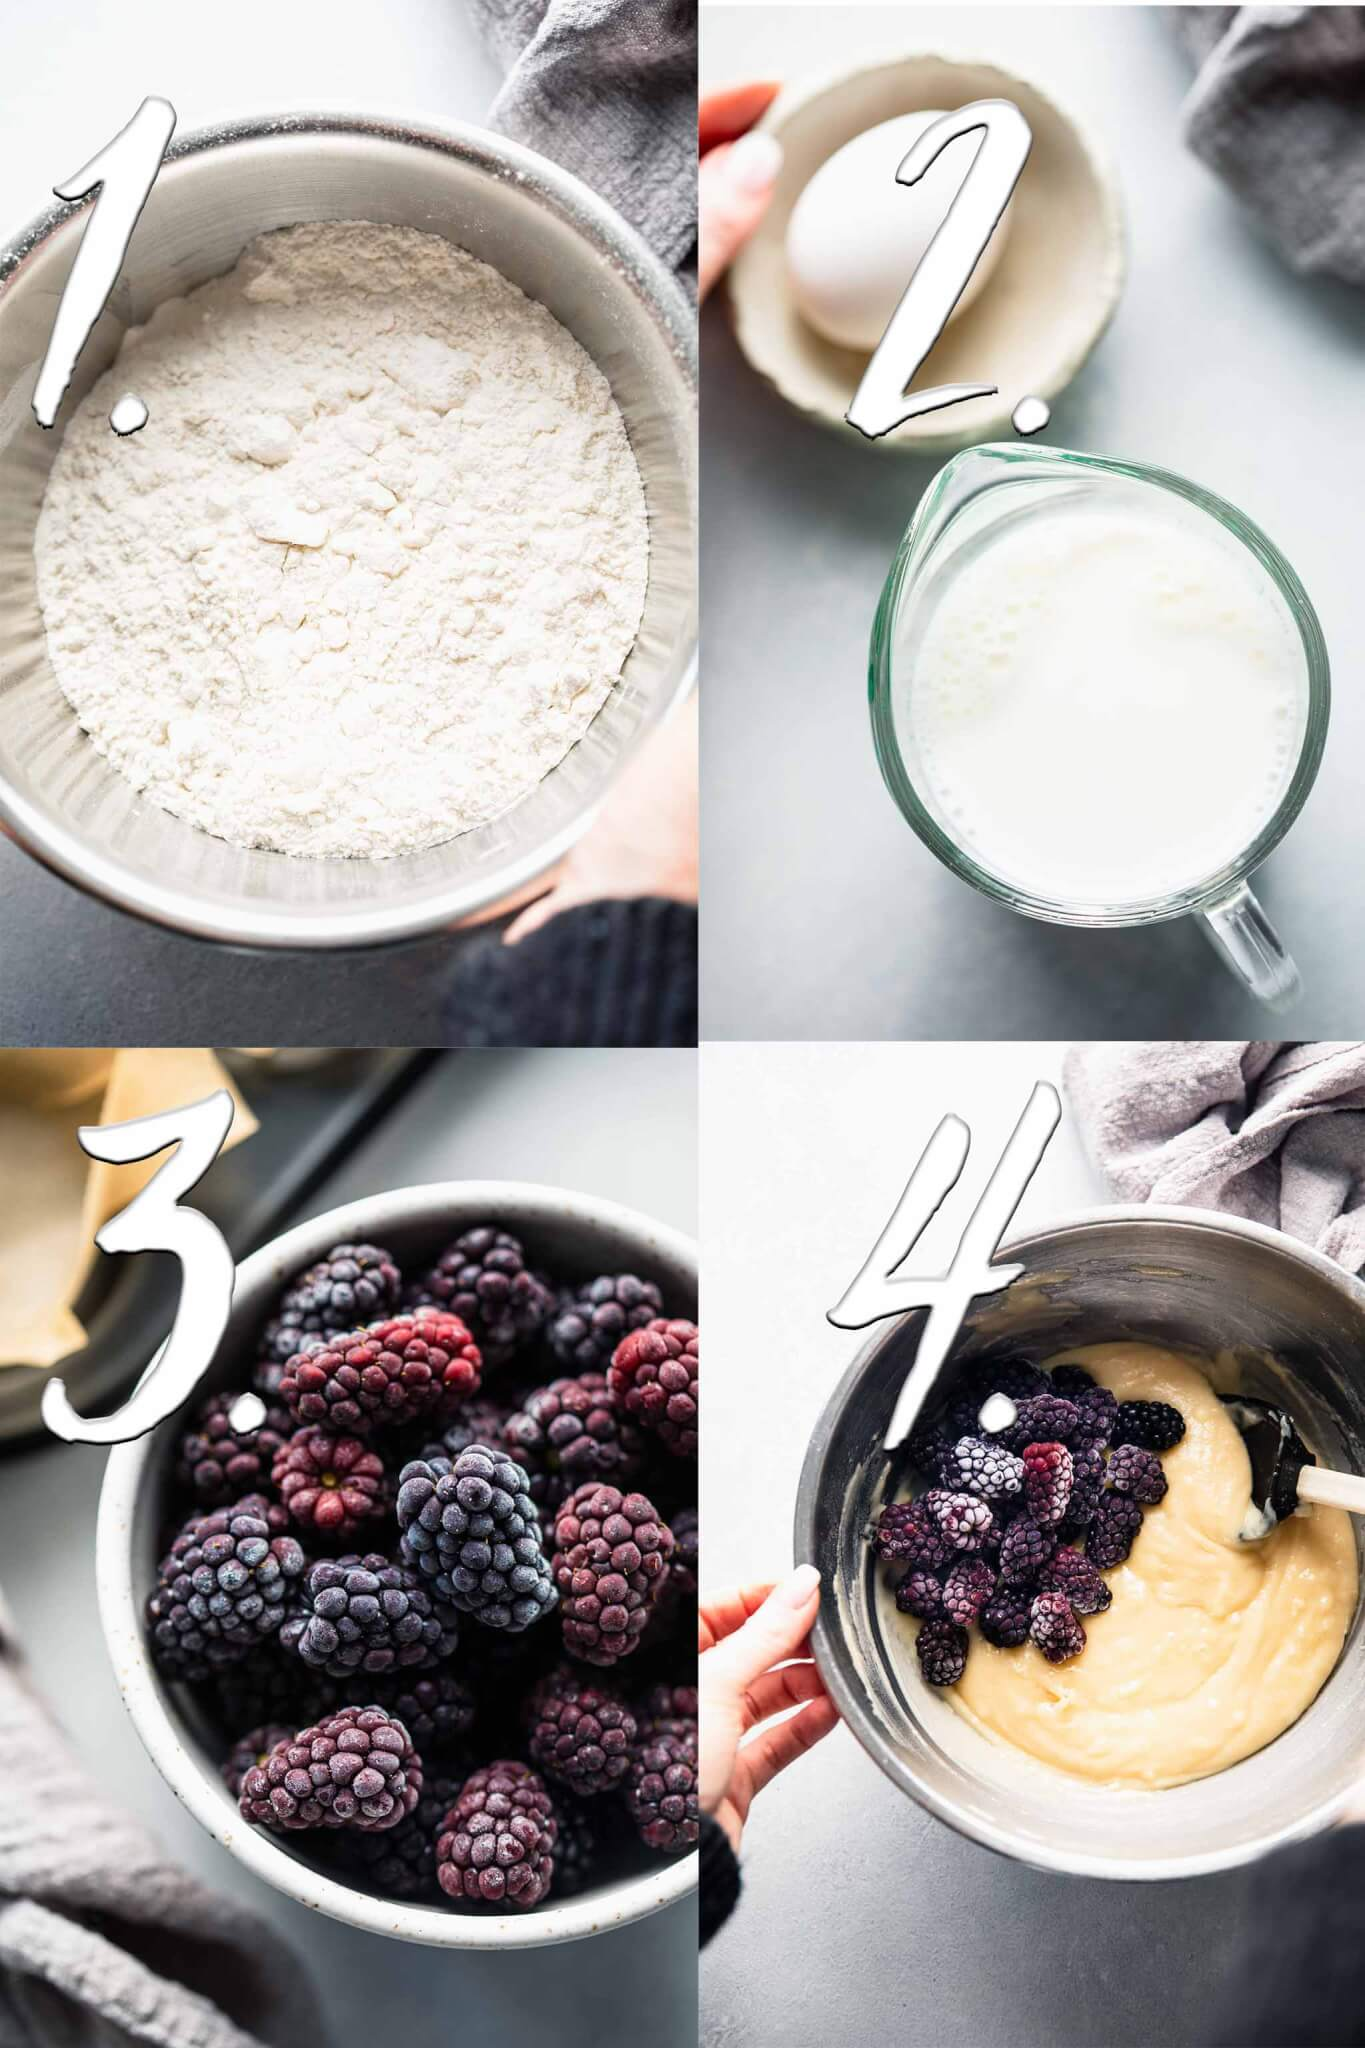 STEPS FOR MAKING BLACKBERRY MUFFINS.